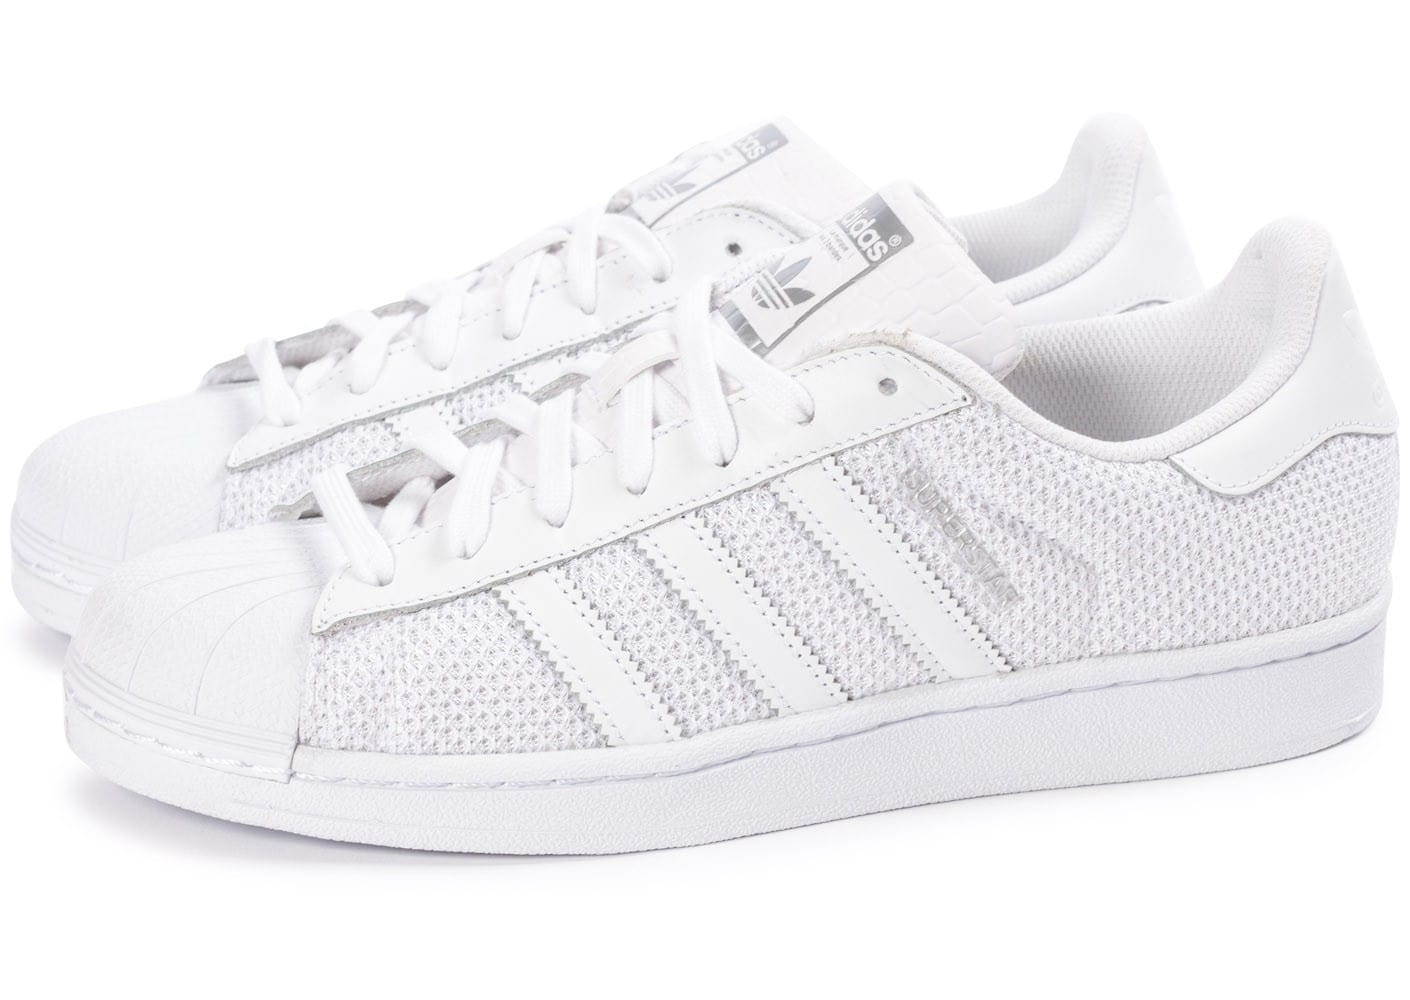 the latest f75dc 7bb71 Cliquez pour zoomer Chaussures adidas Superstar Nylon blanche vue  extérieure adidas superstar blanche ...